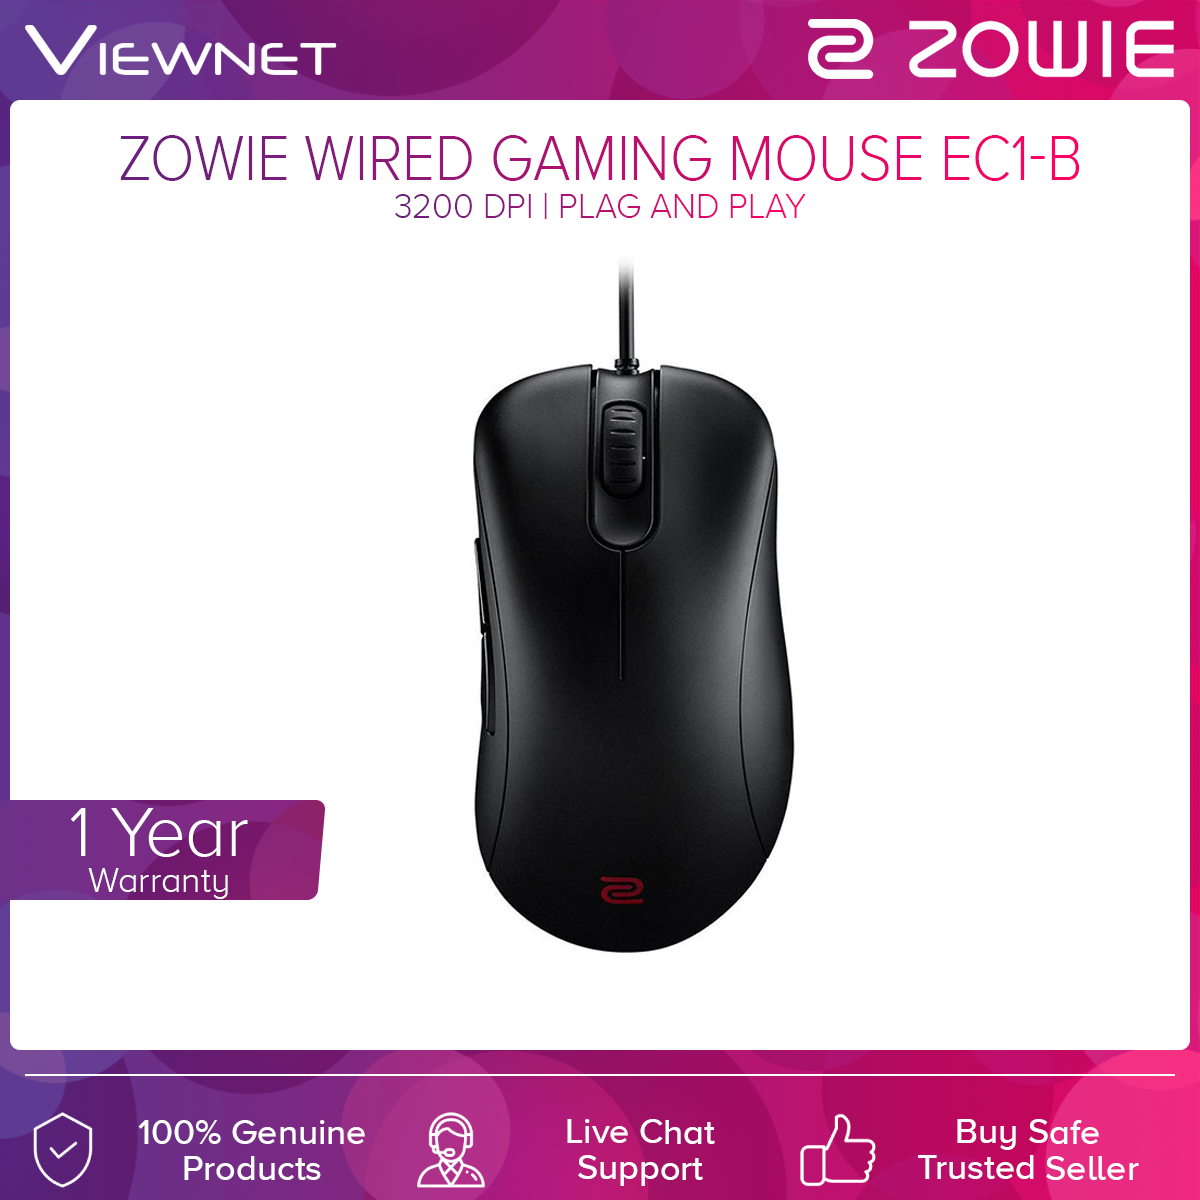 Zowie EC1-B Wired Gaming Mouse for Esports (Black/CS-GO Edition)